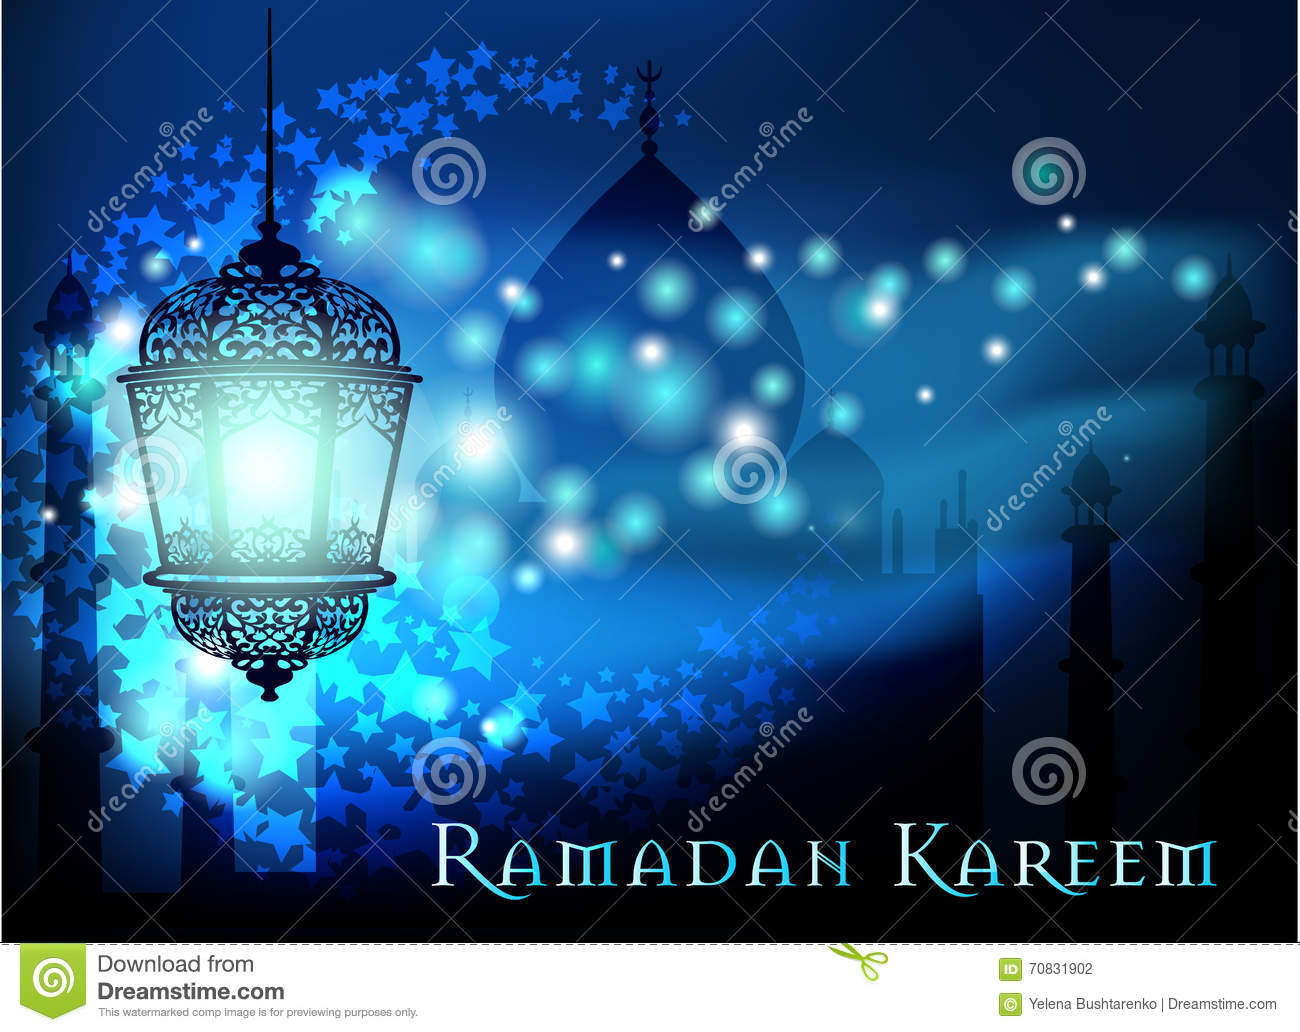 Ramadan kareem greeting on blurred background with beautiful download ramadan kareem greeting on blurred background with beautiful illuminated arabic lamp vector illustration stock m4hsunfo